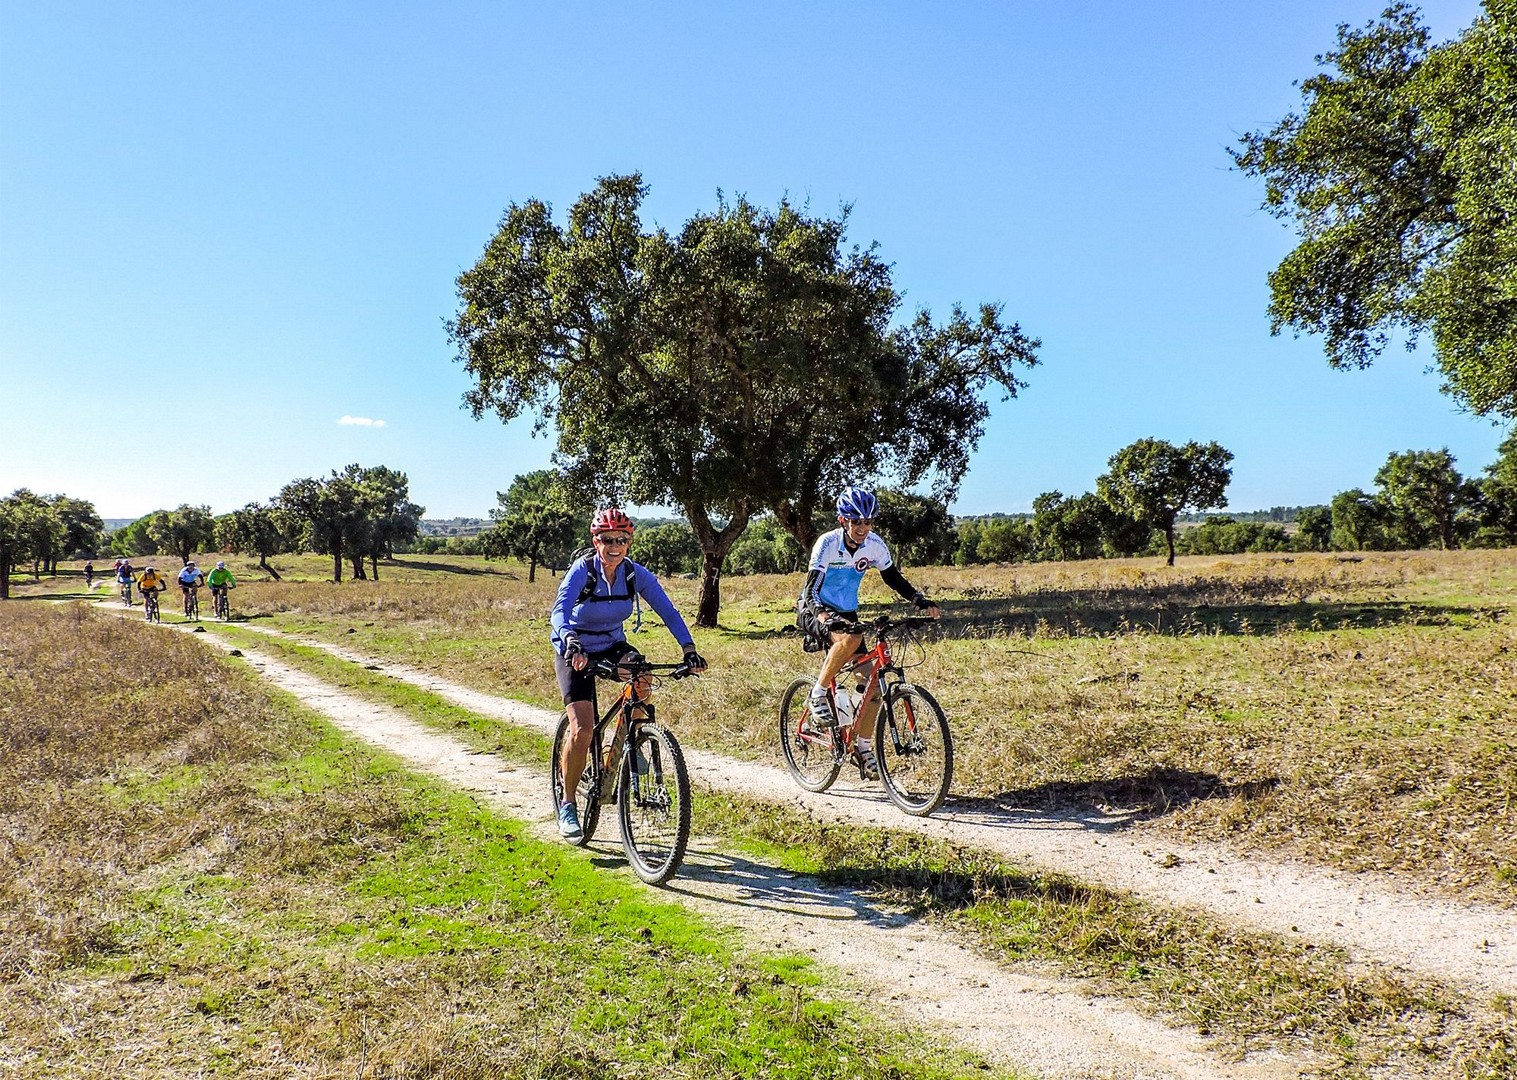 portuguese-mountain-bike-tours-roman-trails-saddle-skedaddle.jpg - Portugal - Roman Trails - Guided Mountain Bike Holiday - Mountain Biking